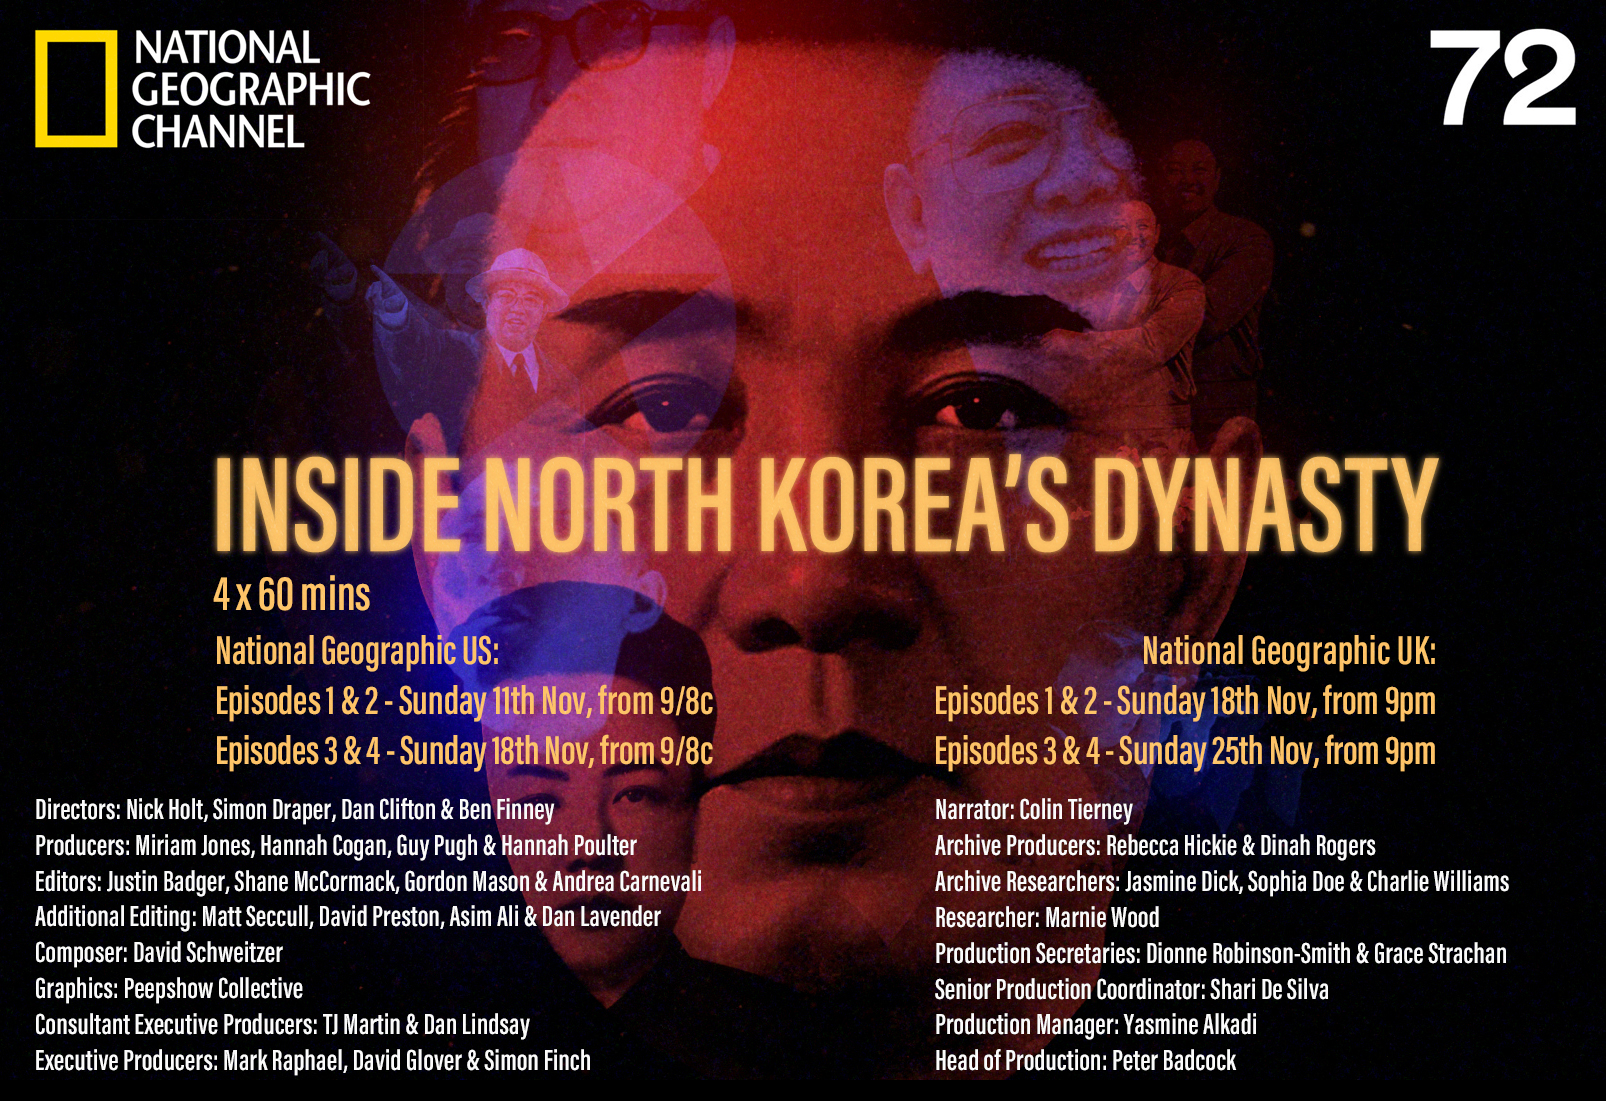 Inside North Korea's Dynasty - TX CardFINAL.jpg